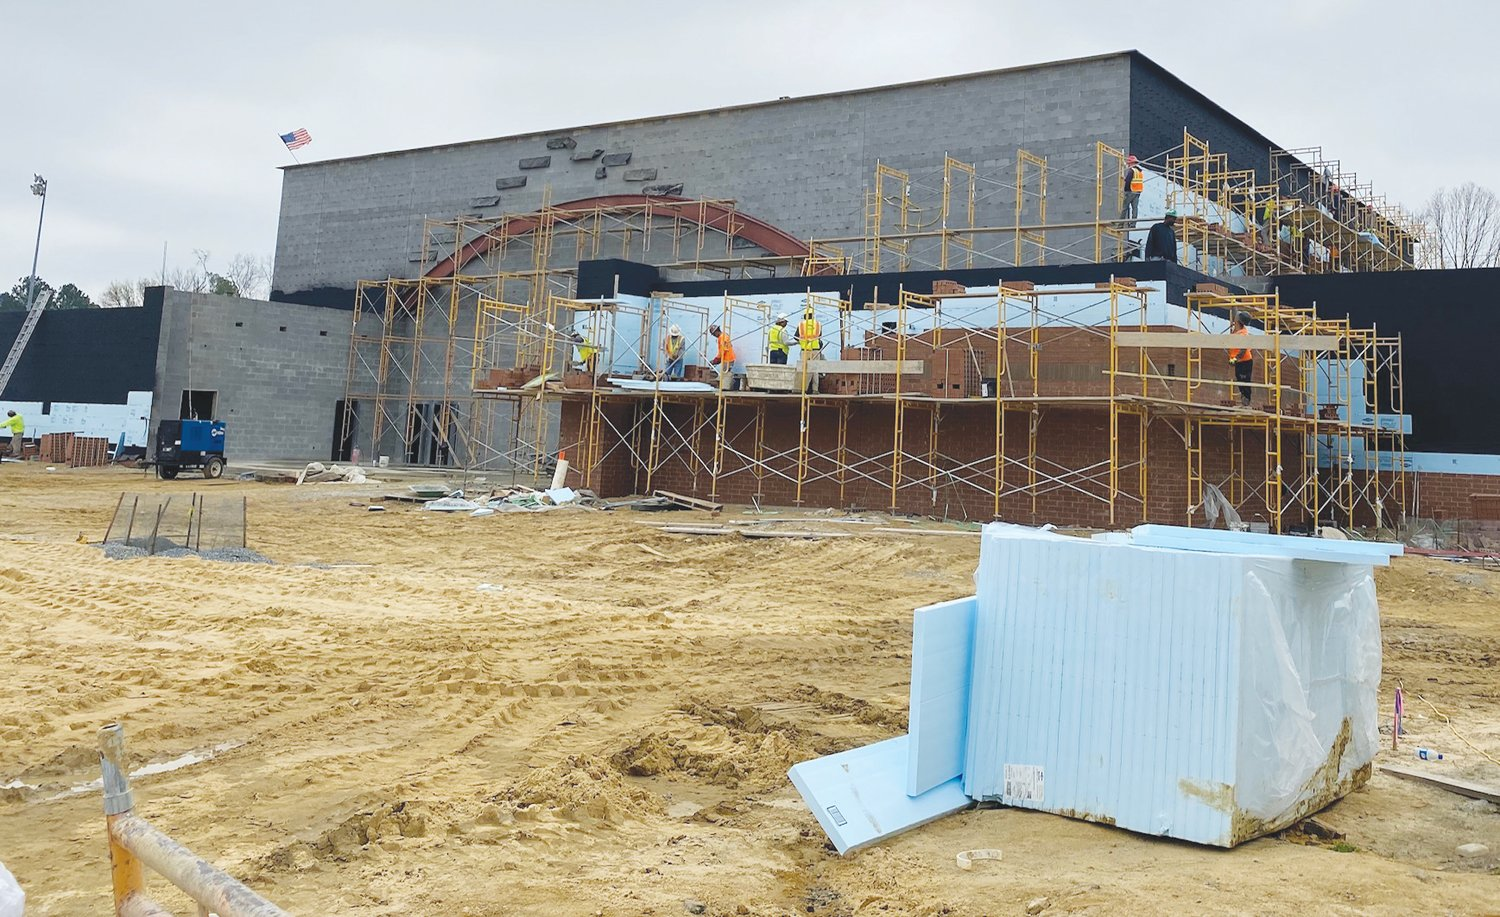 Work continues on new Southern Wayne gym..Despite the coronavirus pandemic, workers continue the construction on the new Southern Wayne High School gymnasium.